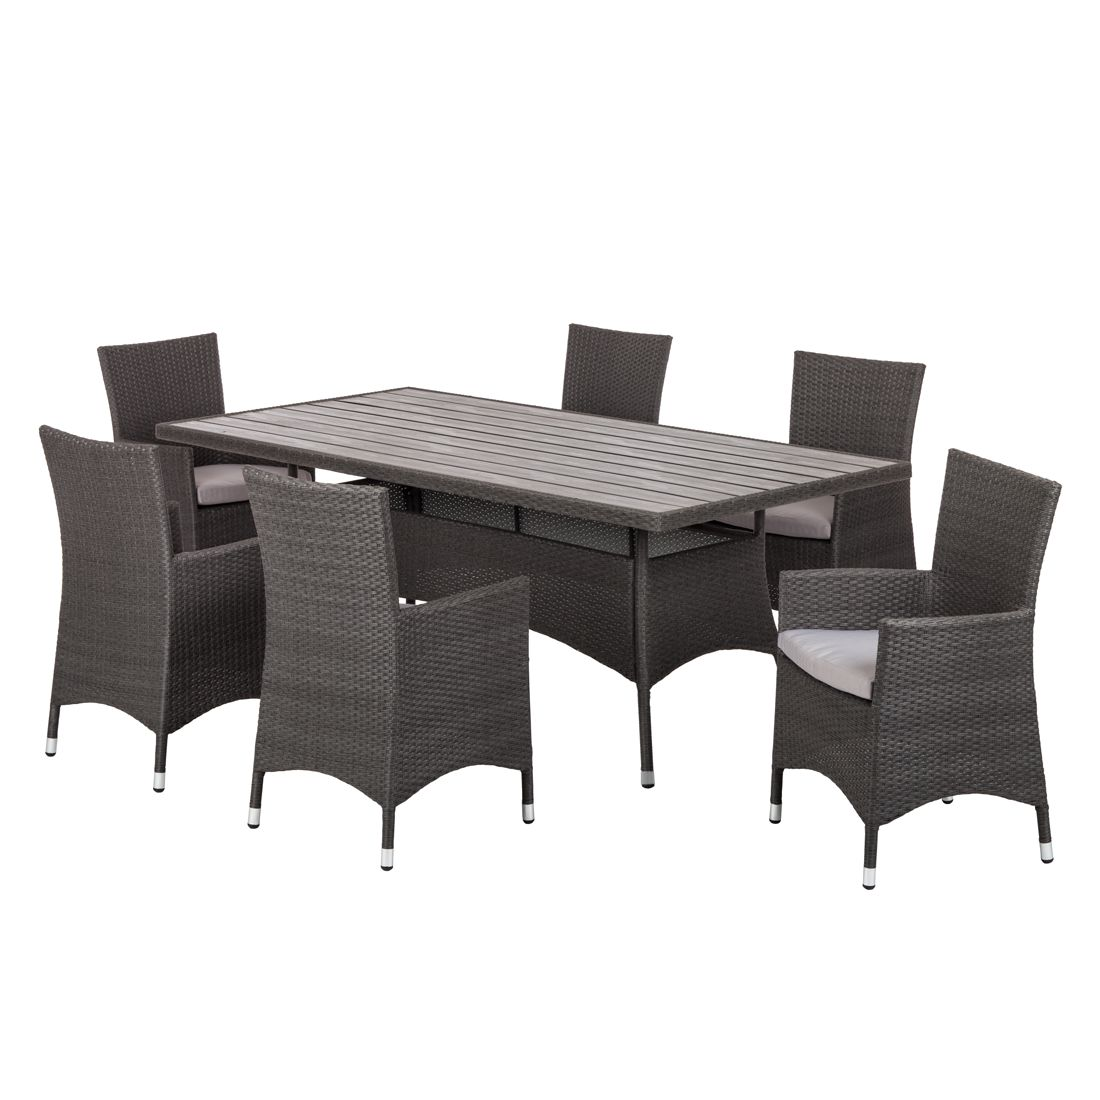 sitzgruppe paradise lounge i 7 teilig polyrattan grau eden company kaufen. Black Bedroom Furniture Sets. Home Design Ideas